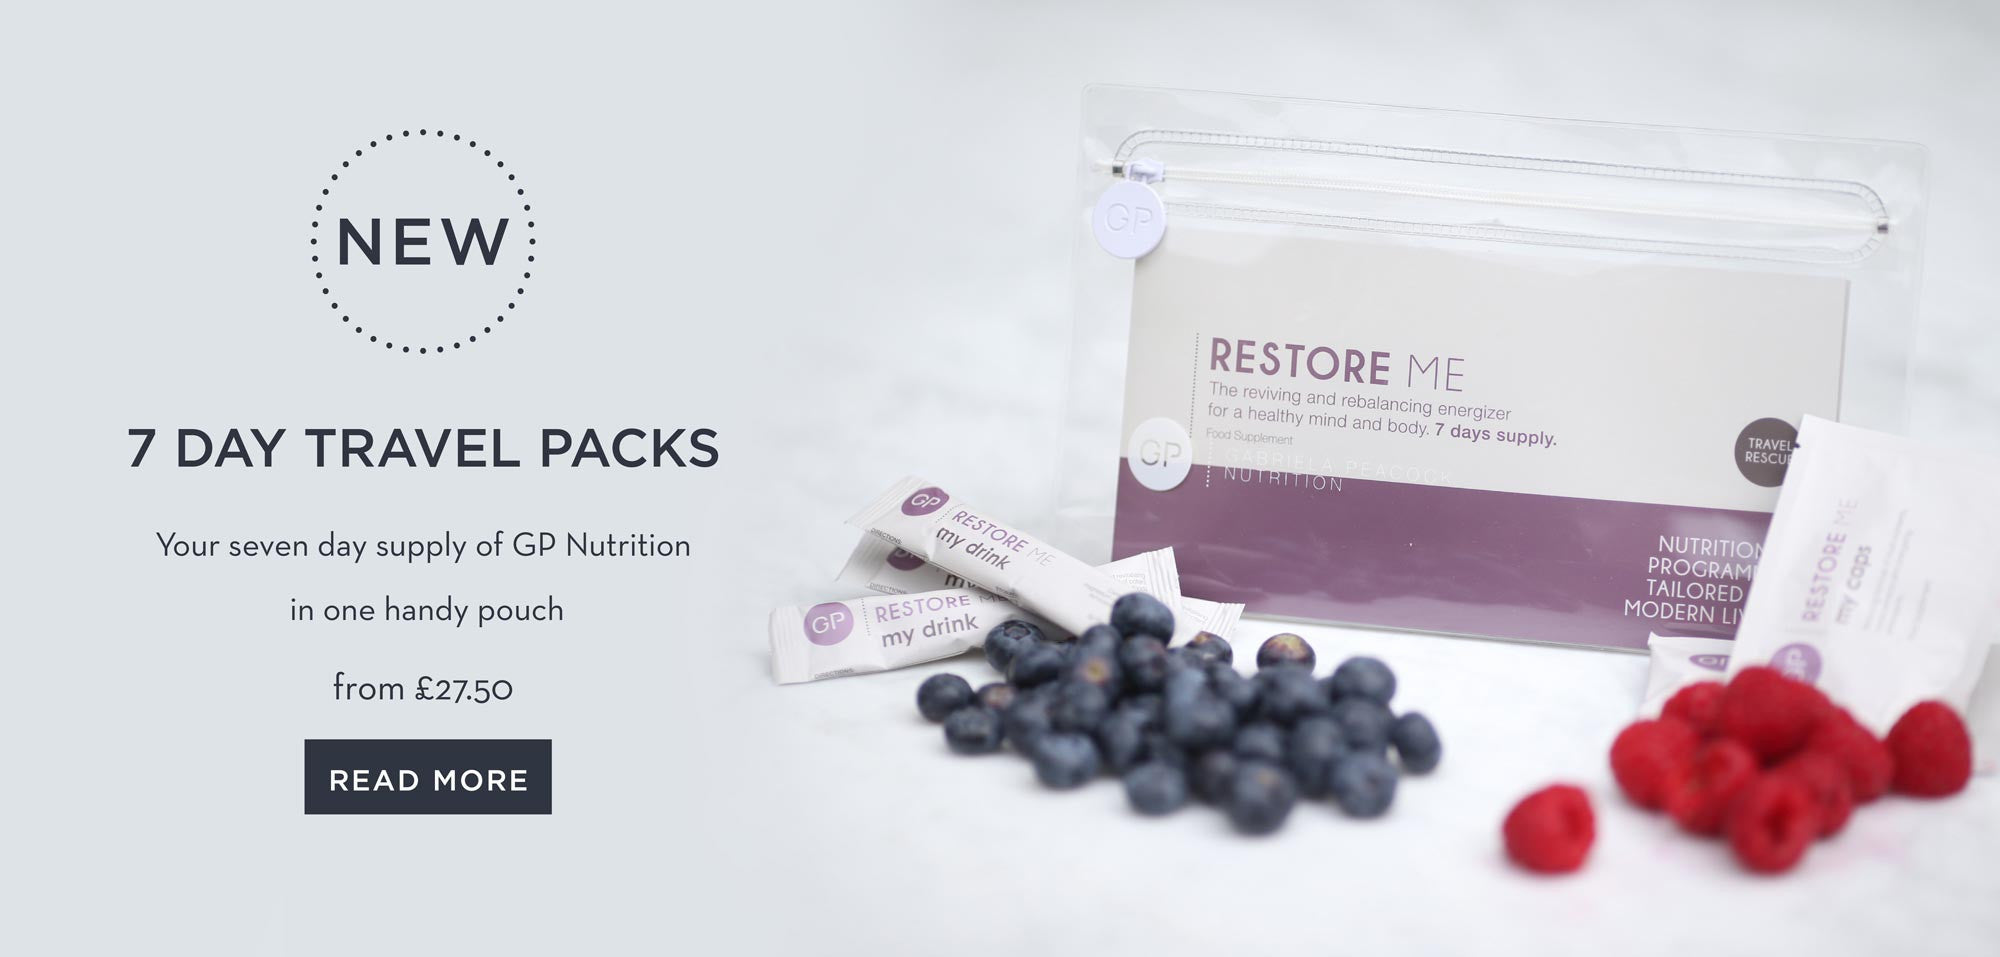 7 day travel packs